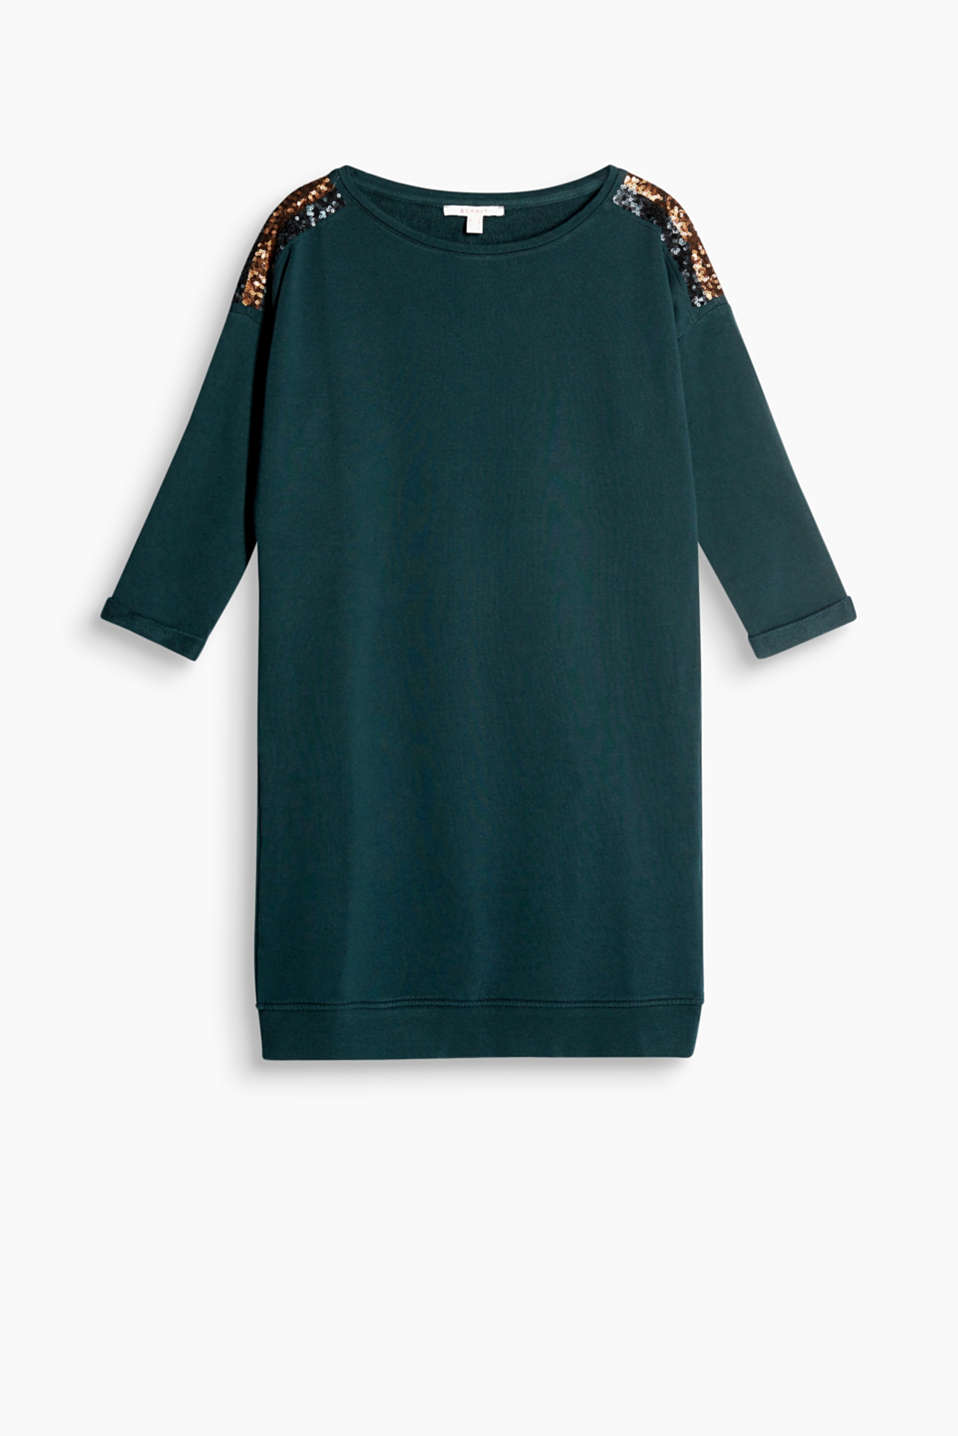 Sporty during the day, glamorous at night: Sweatshirt dress with shimmering sequinned shoulders